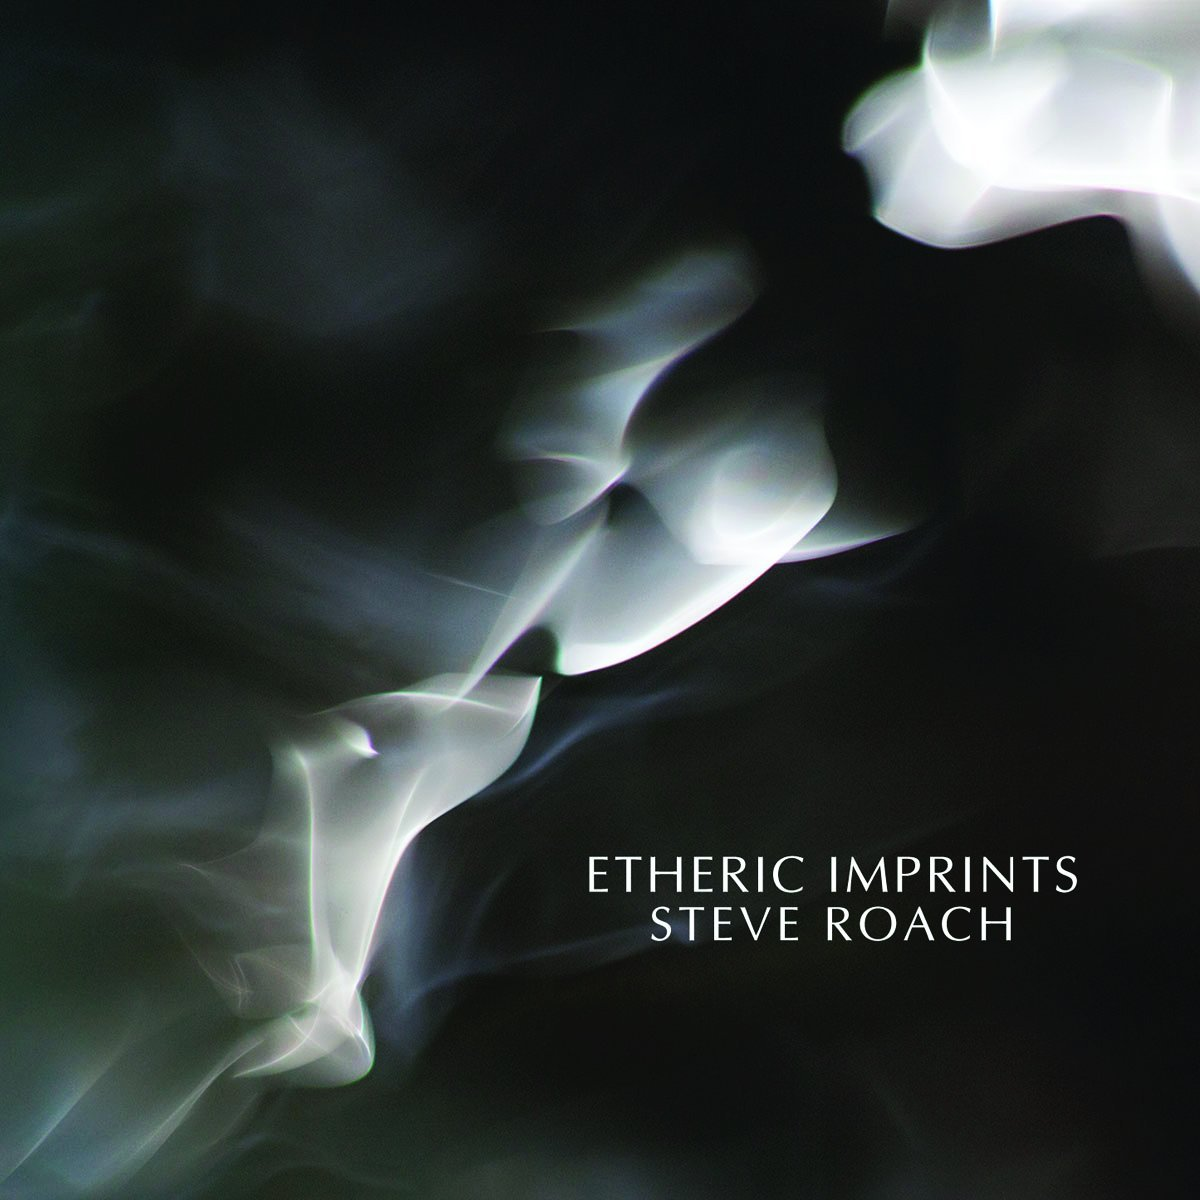 Steve Roach — Etheric Imprints